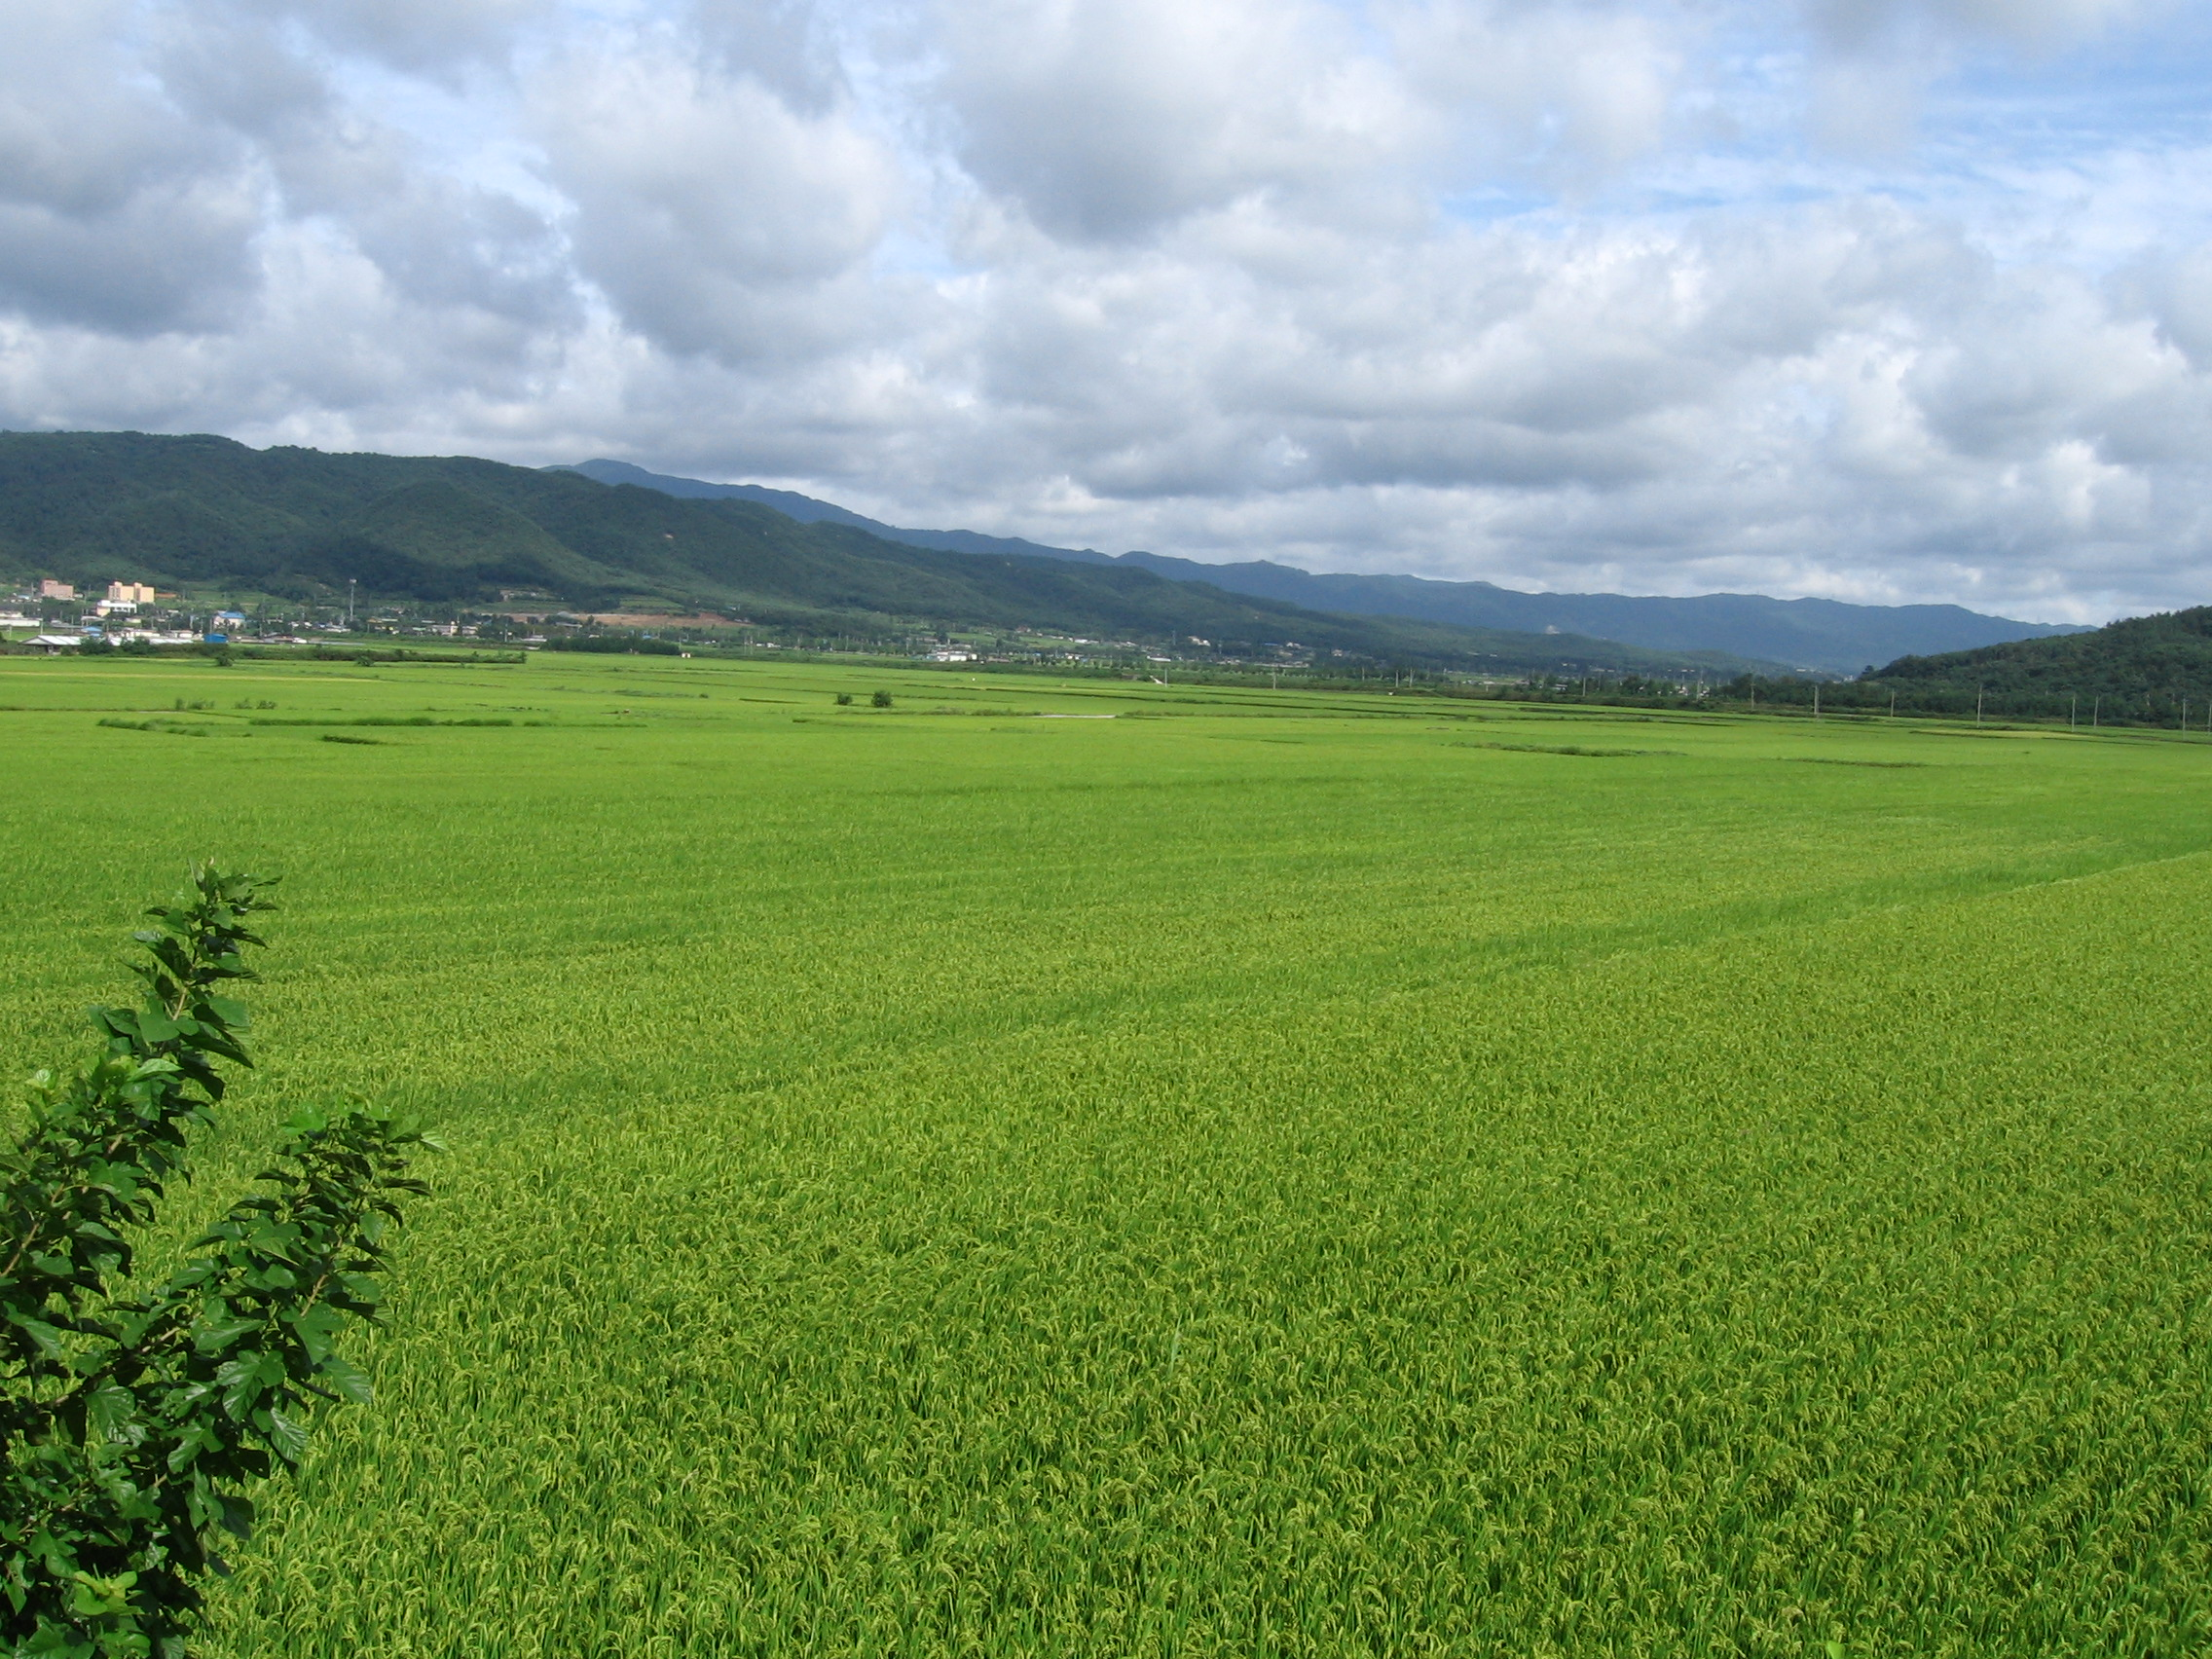 rice fields - photo #30